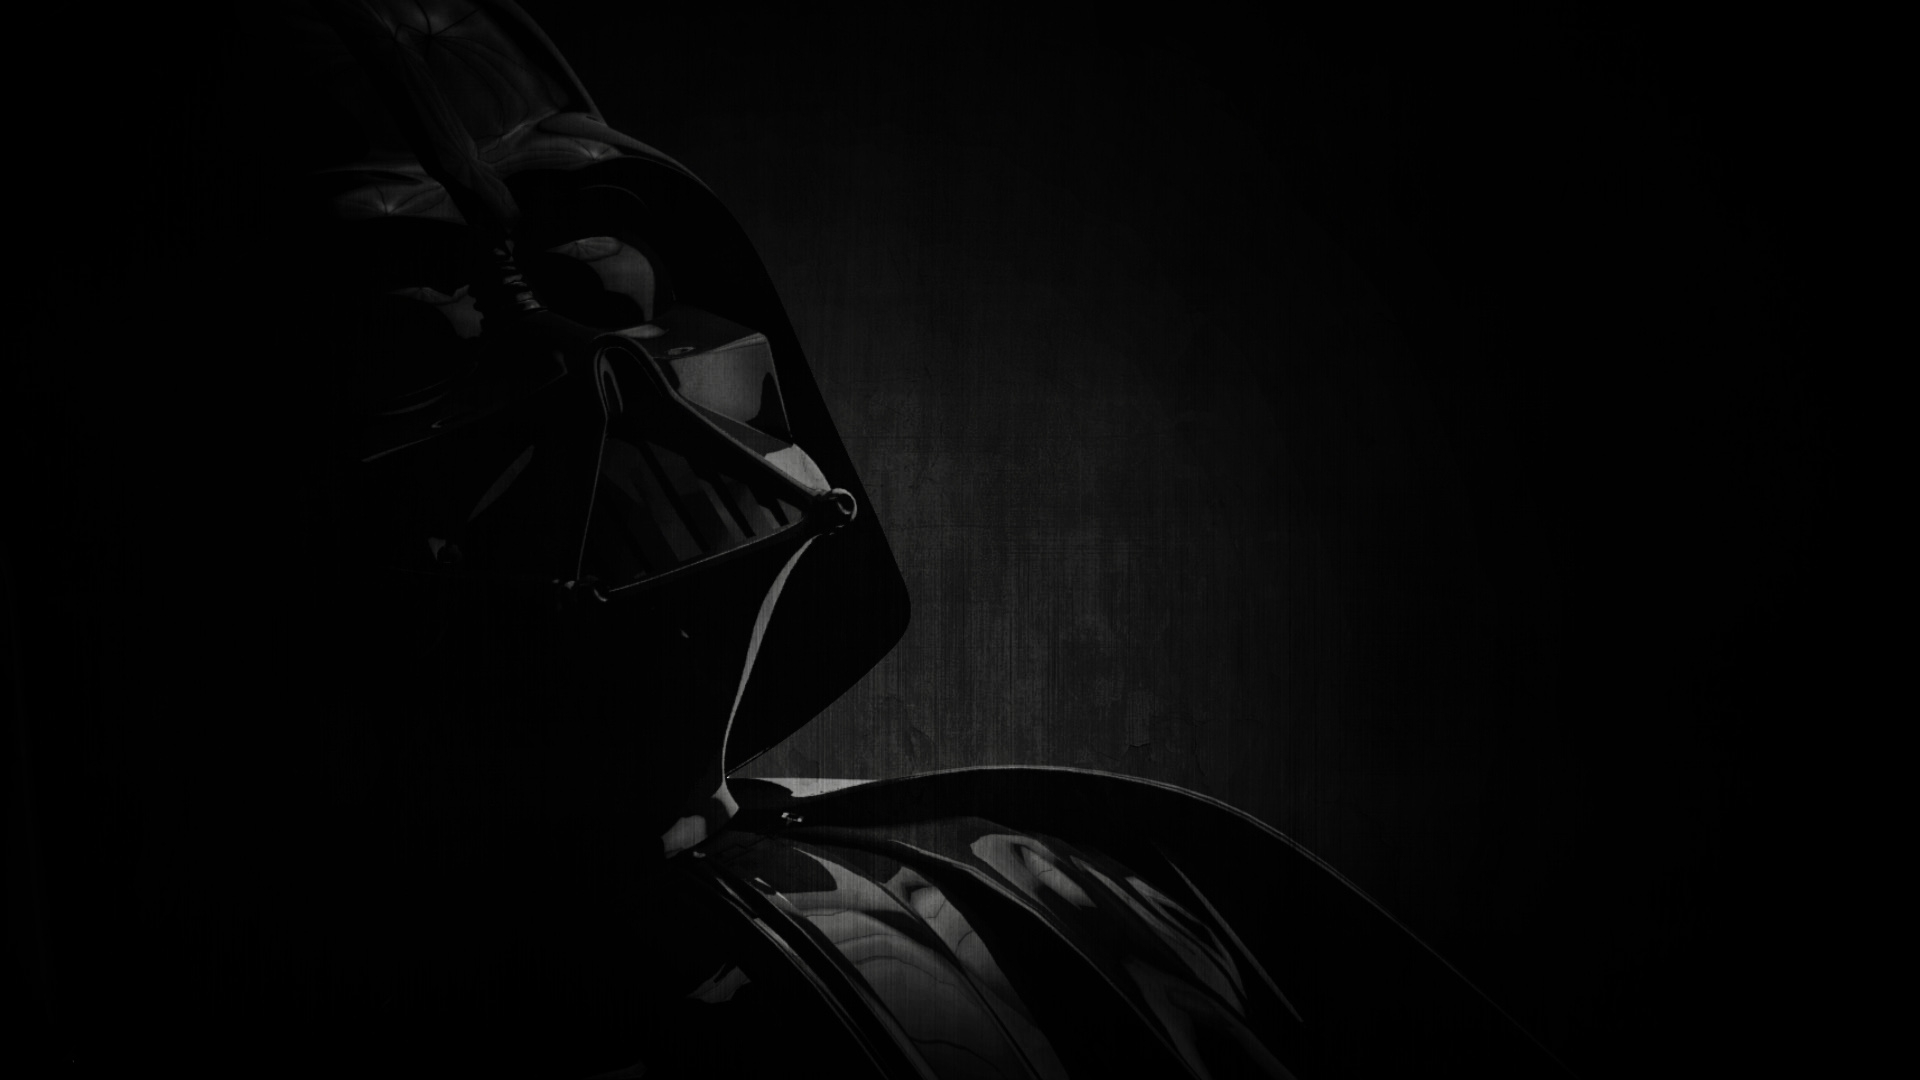 Darth Vader Character   High Definition Wallpapers   HD wallpapers 1920x1080